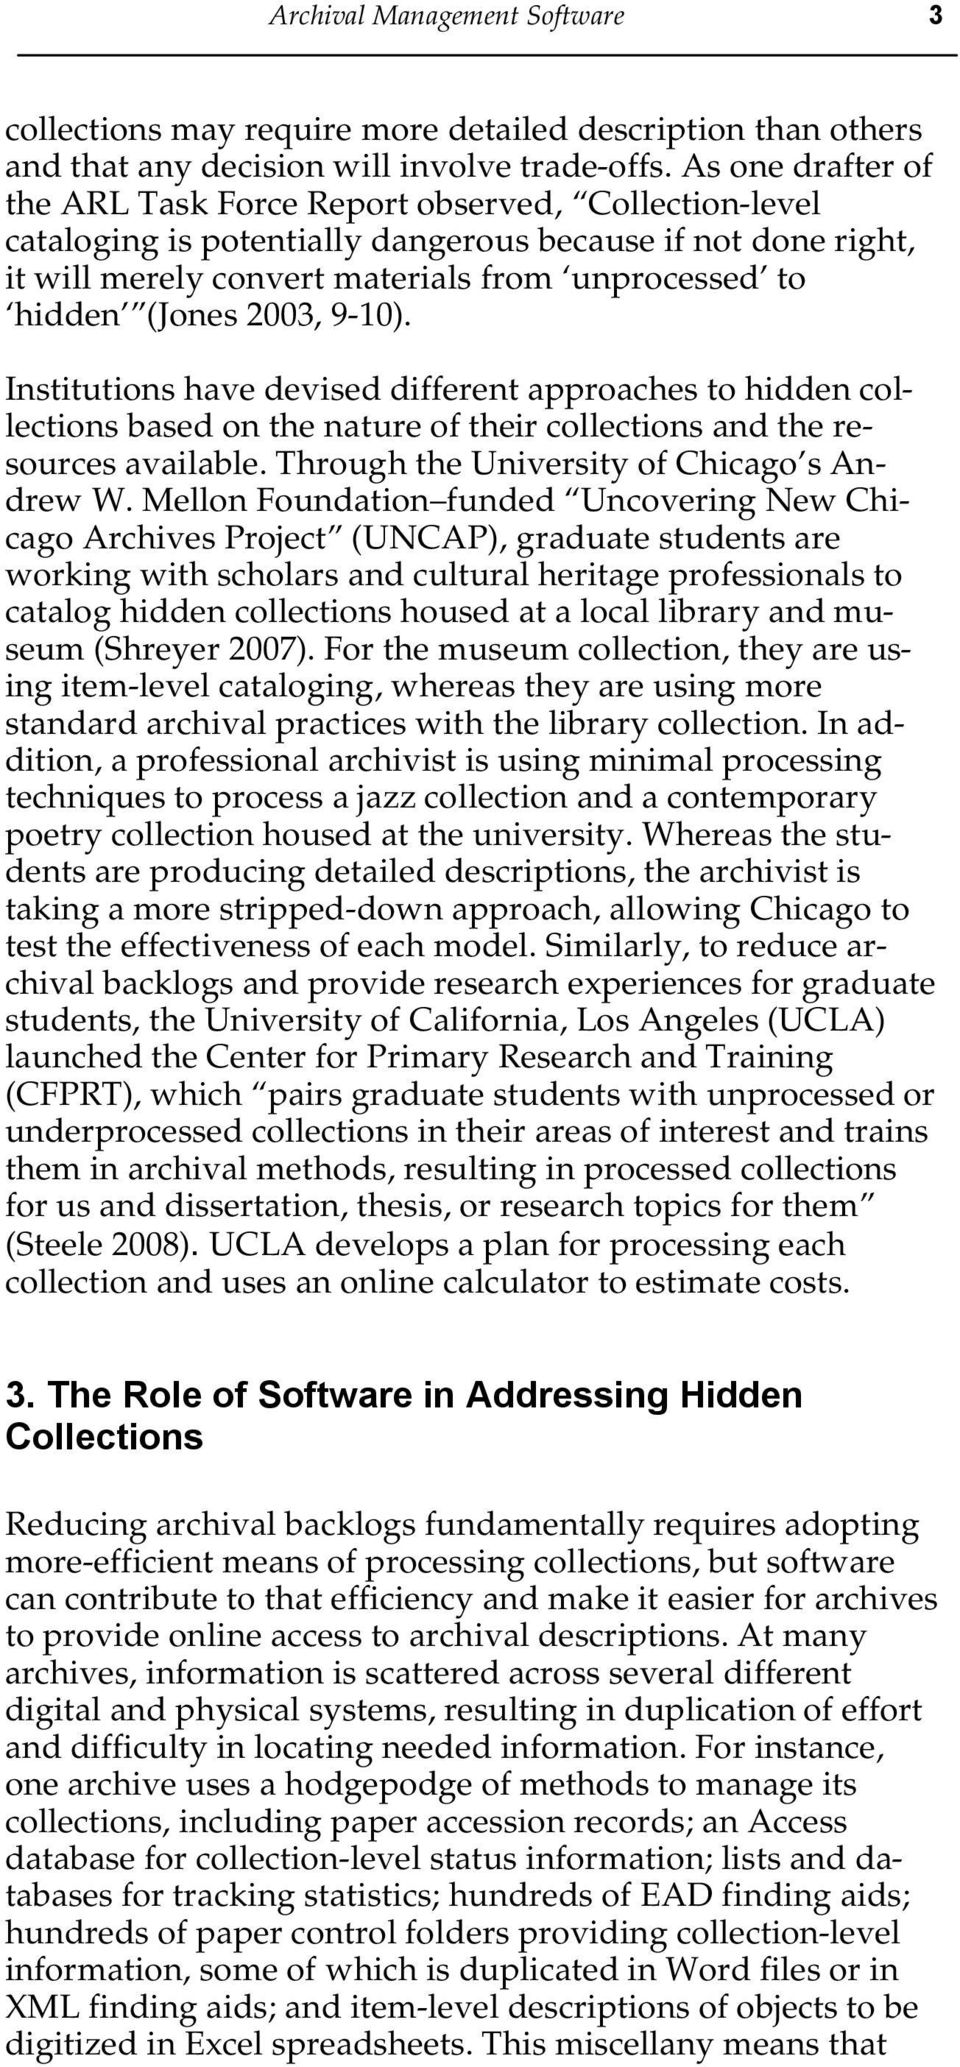 (Jones 2003, 9-10). Institutions have devised different approaches to hidden collections based on the nature of their collections and the resources available.